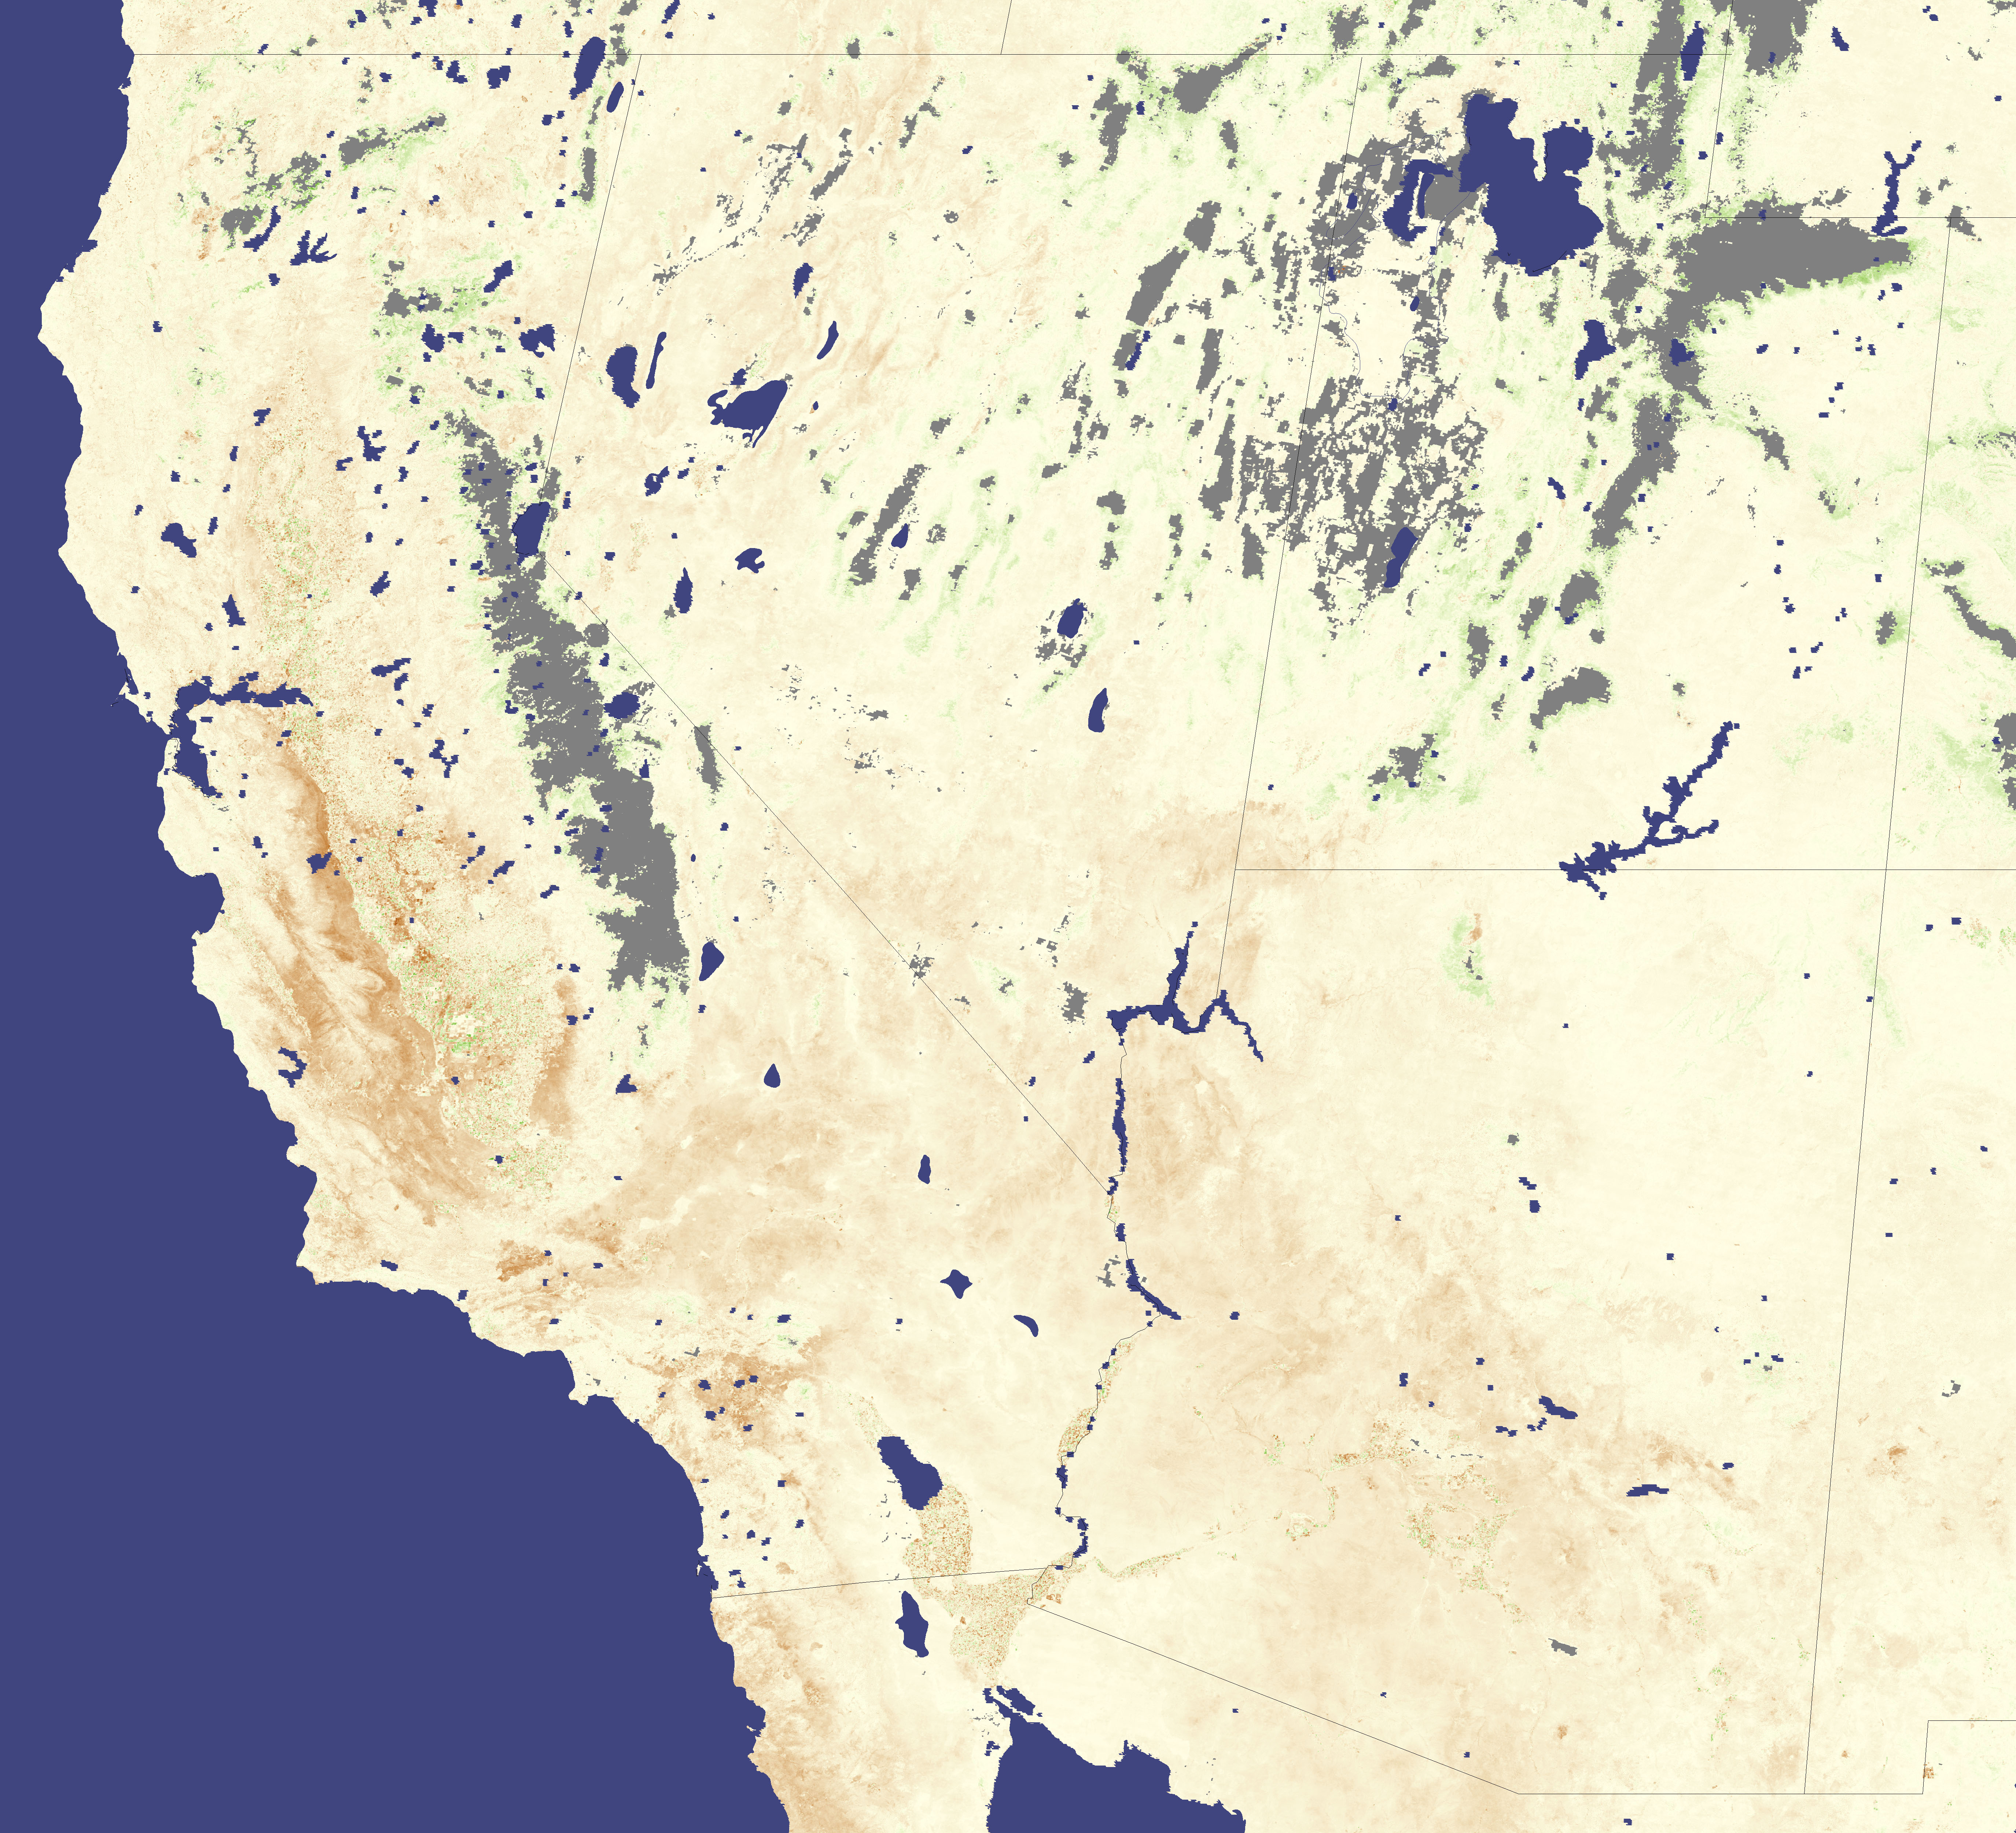 Drought in Southwestern United States